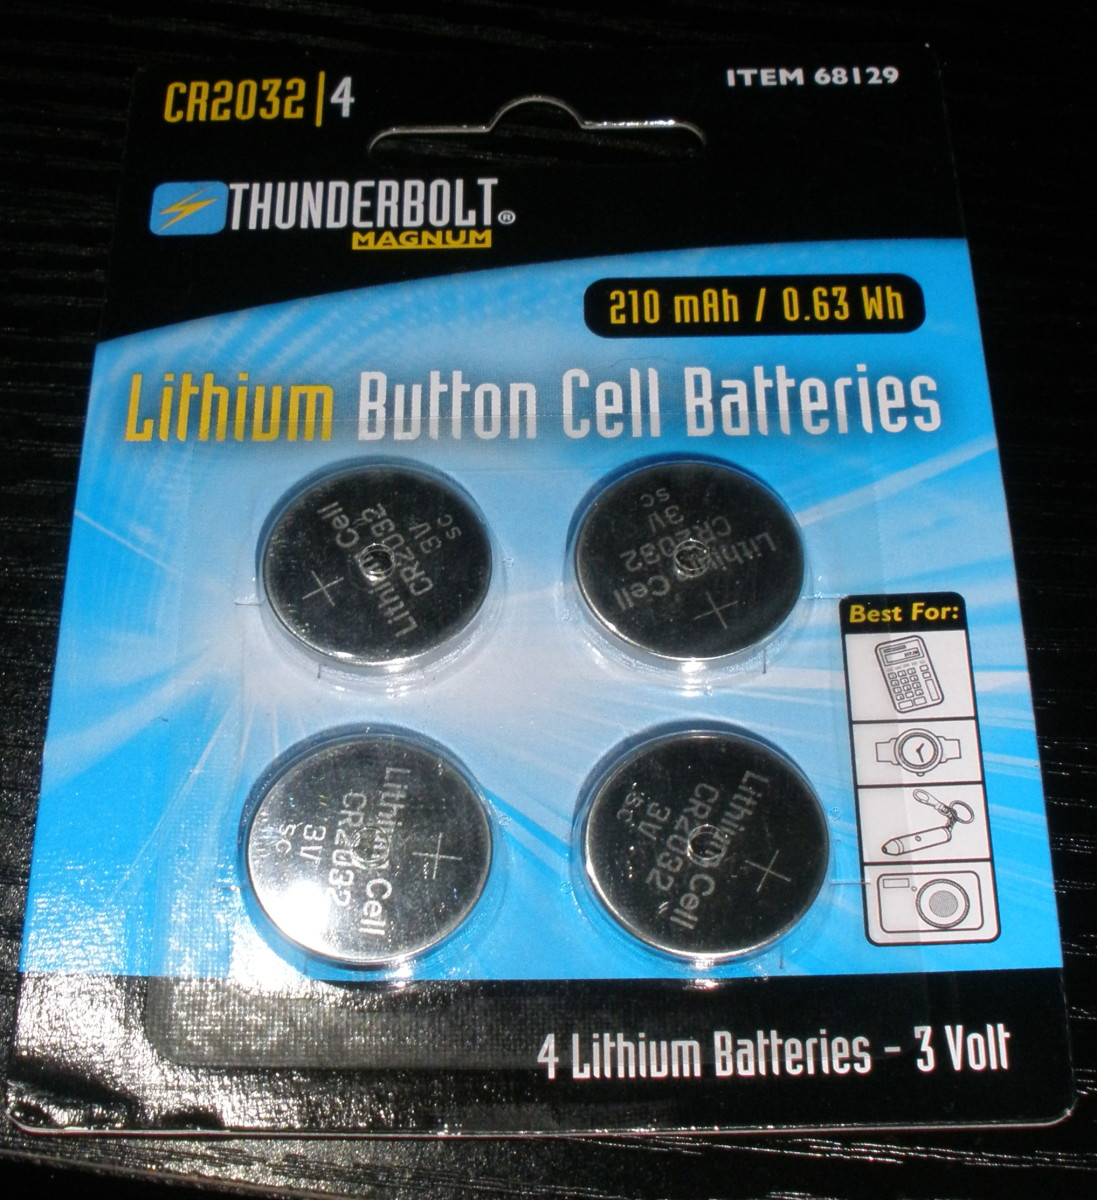 Any CR2032 coin cell battery can be swapped in to replace the old backup battery.  I prefer purchasing mine from Harbor Freight since they're so cheap.